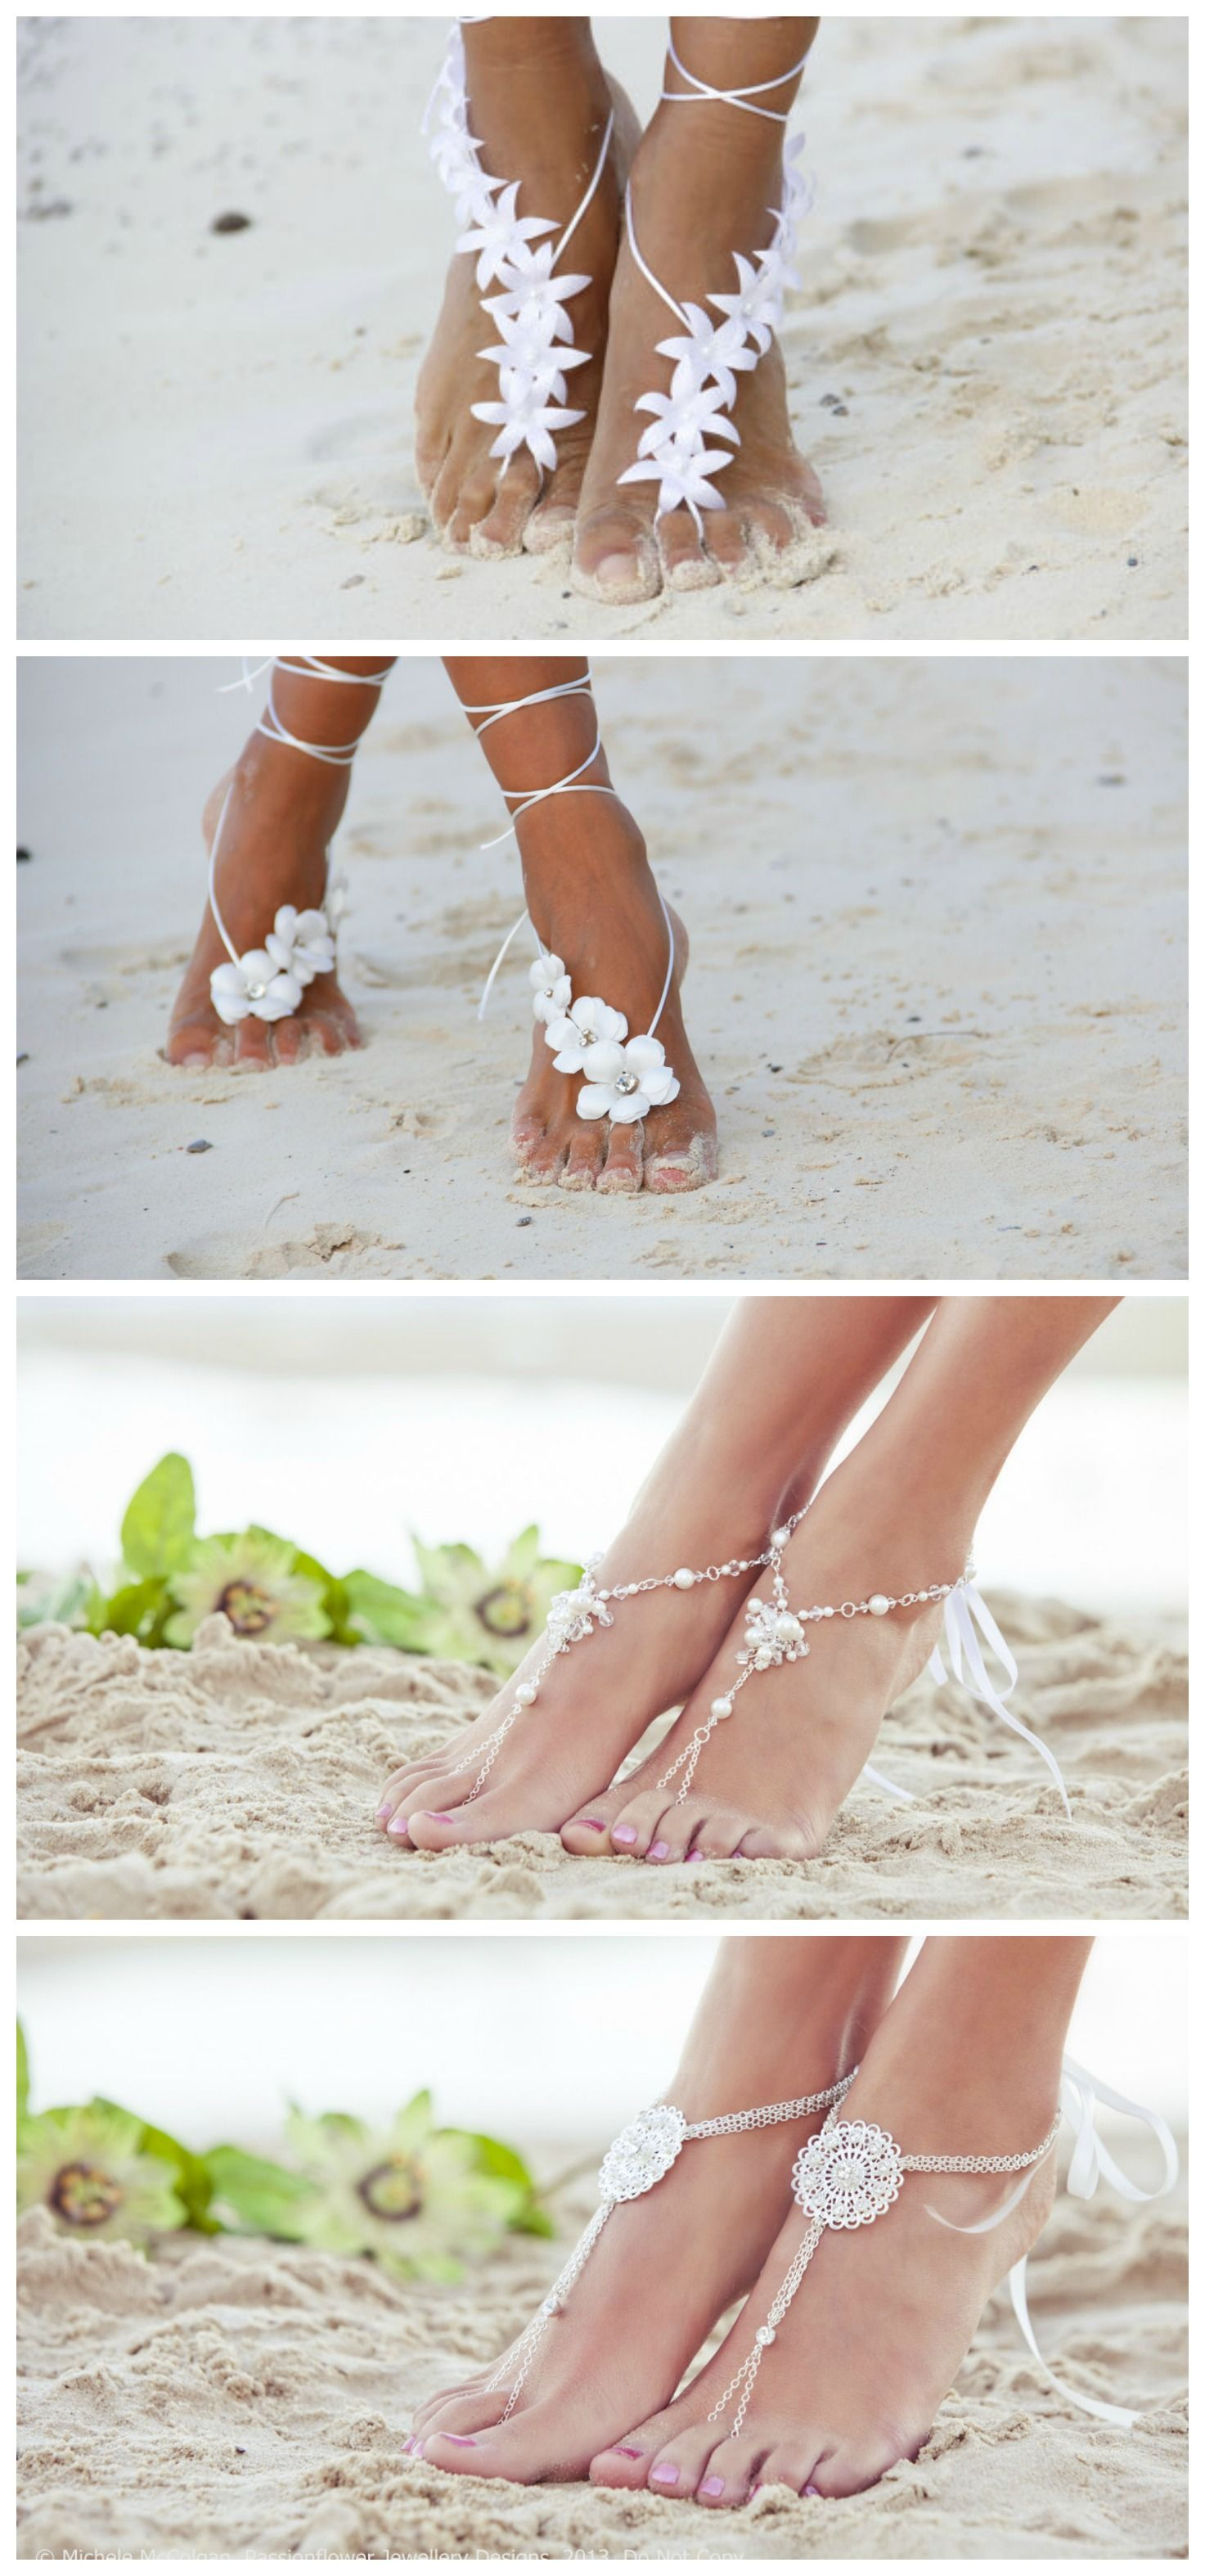 Wedding Shoes: Heels vs Flats | Beach shoes, Beach and Wedding